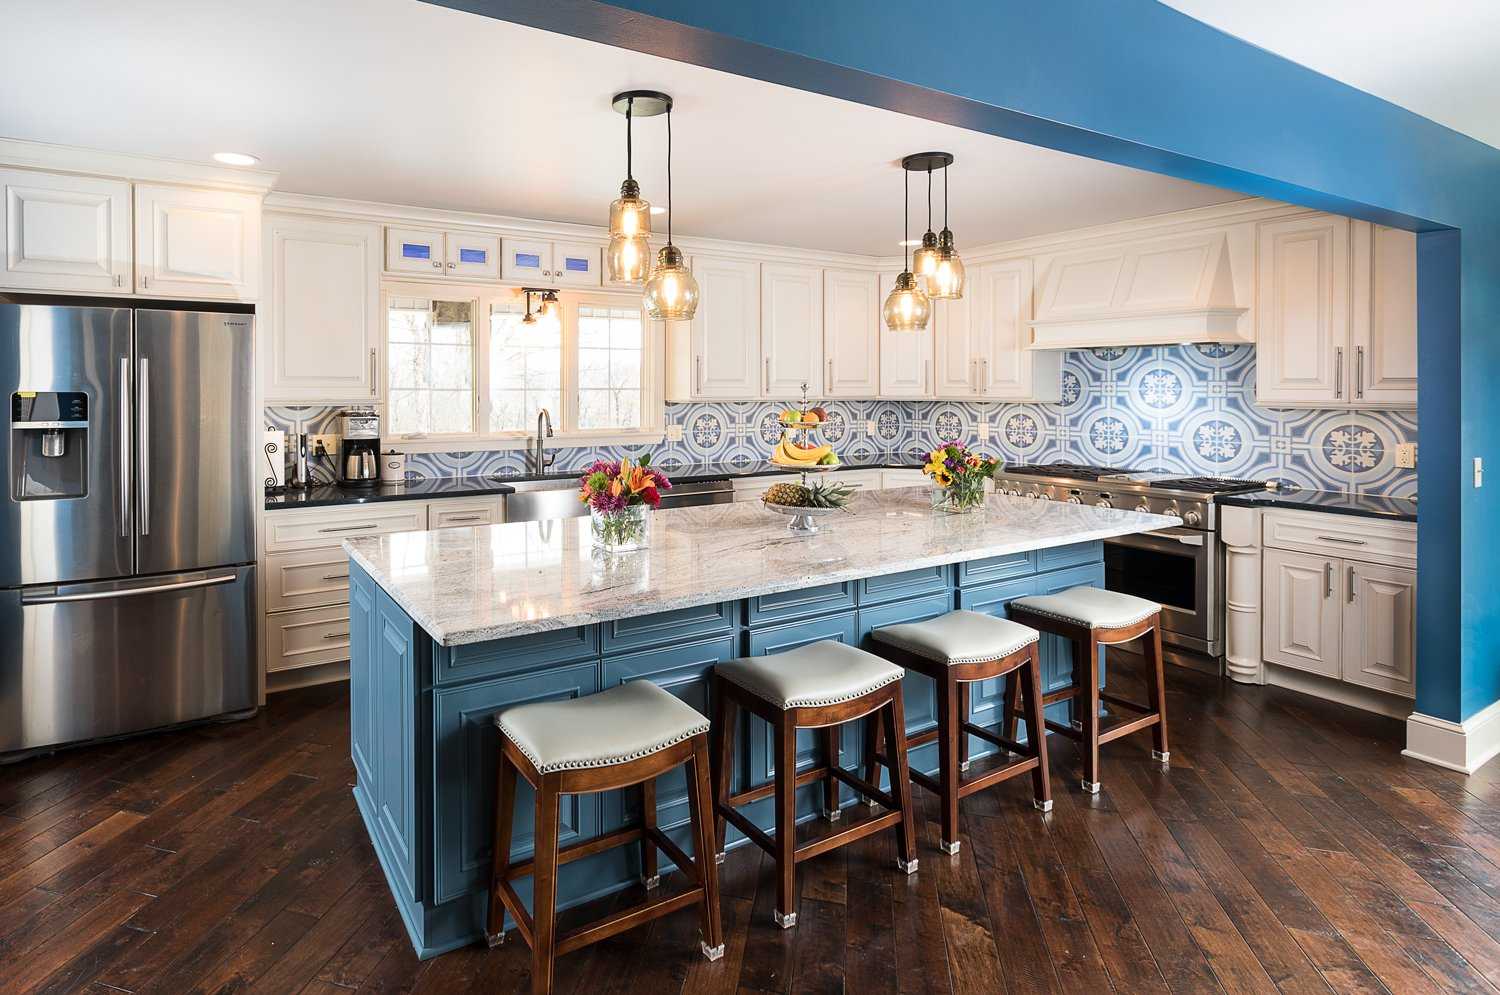 Photo By Brandon AlmsChad Holgerson Of Keystone Building U0026 Design Worked  With His Crew To Transform The Homeu0027s Former Galley Style Kitchen Into An  Open, ...